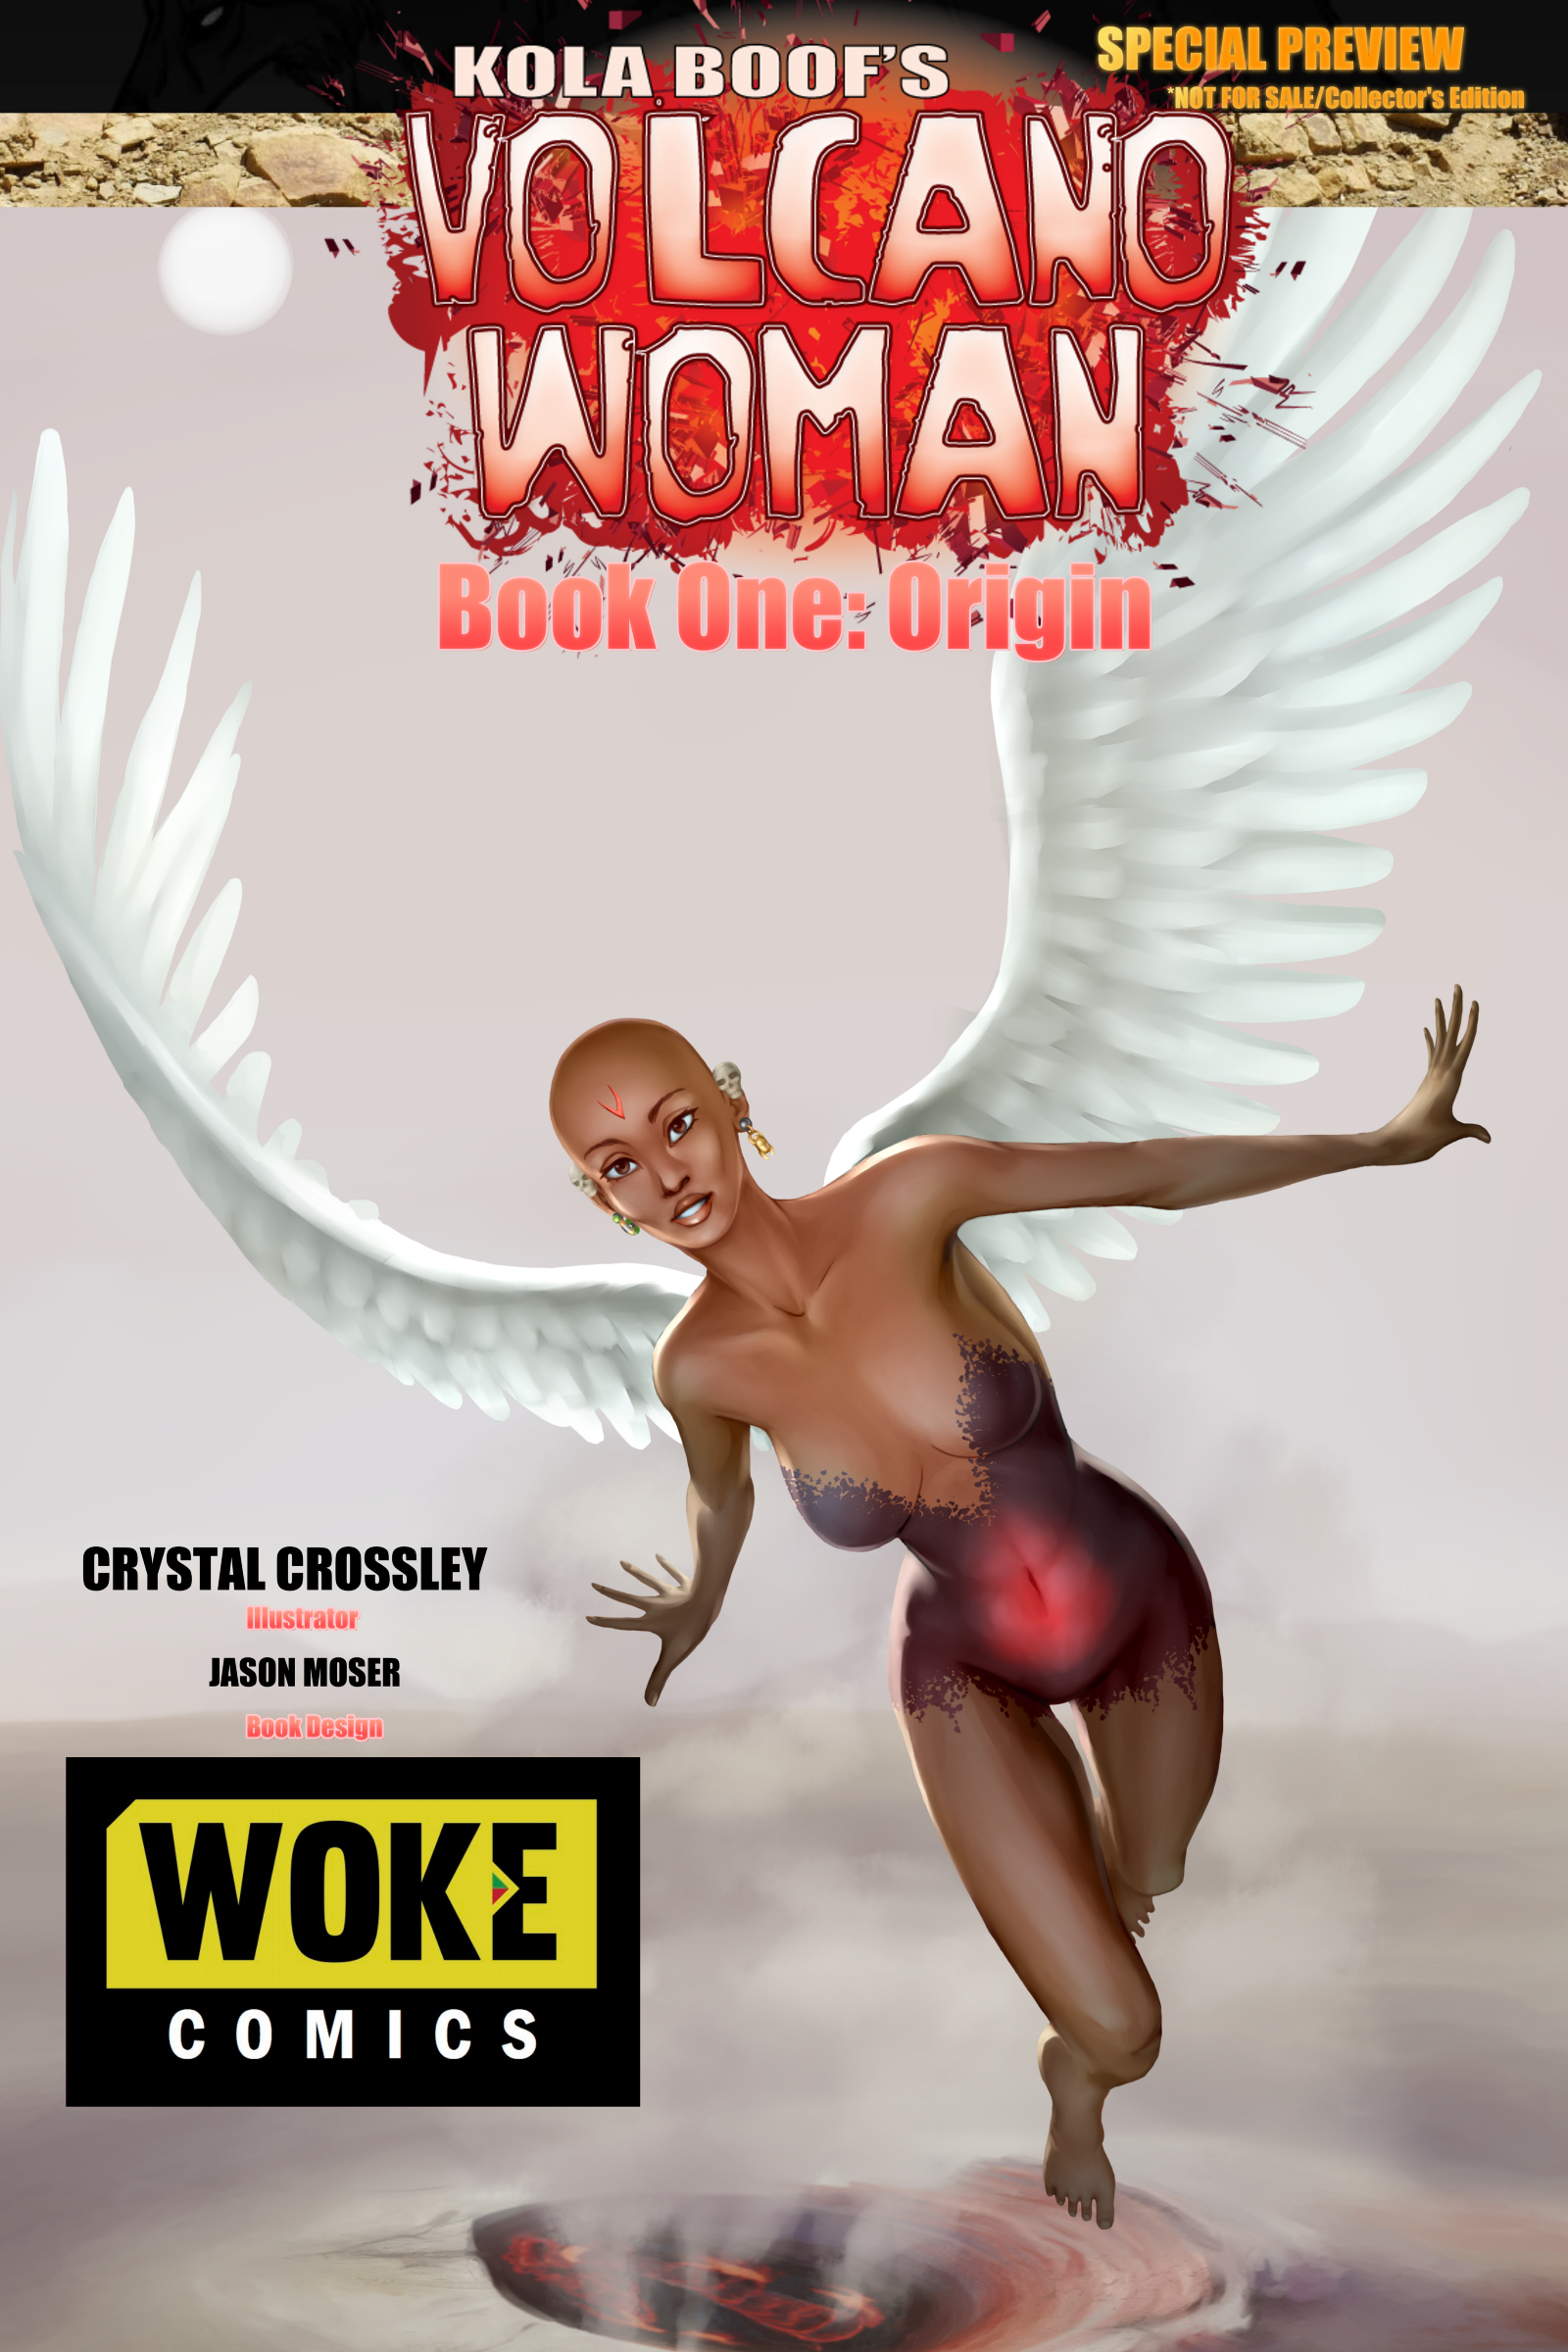 Volcanic Justice An Interview With Kola Boof Creator Of Volcano Woman